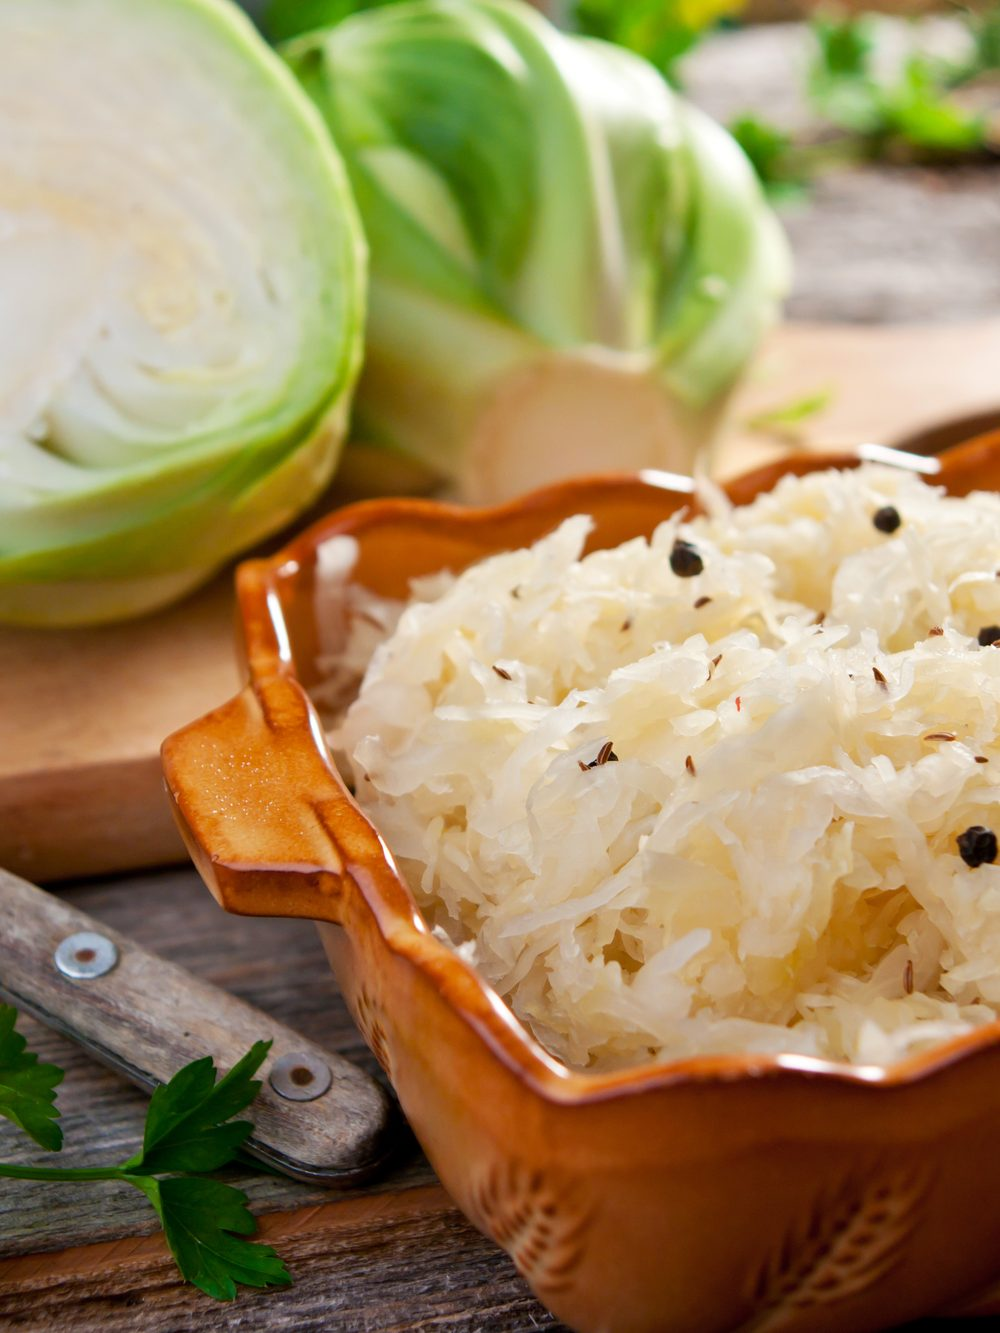 Rhoot How to Make Homemade Sauerkraut